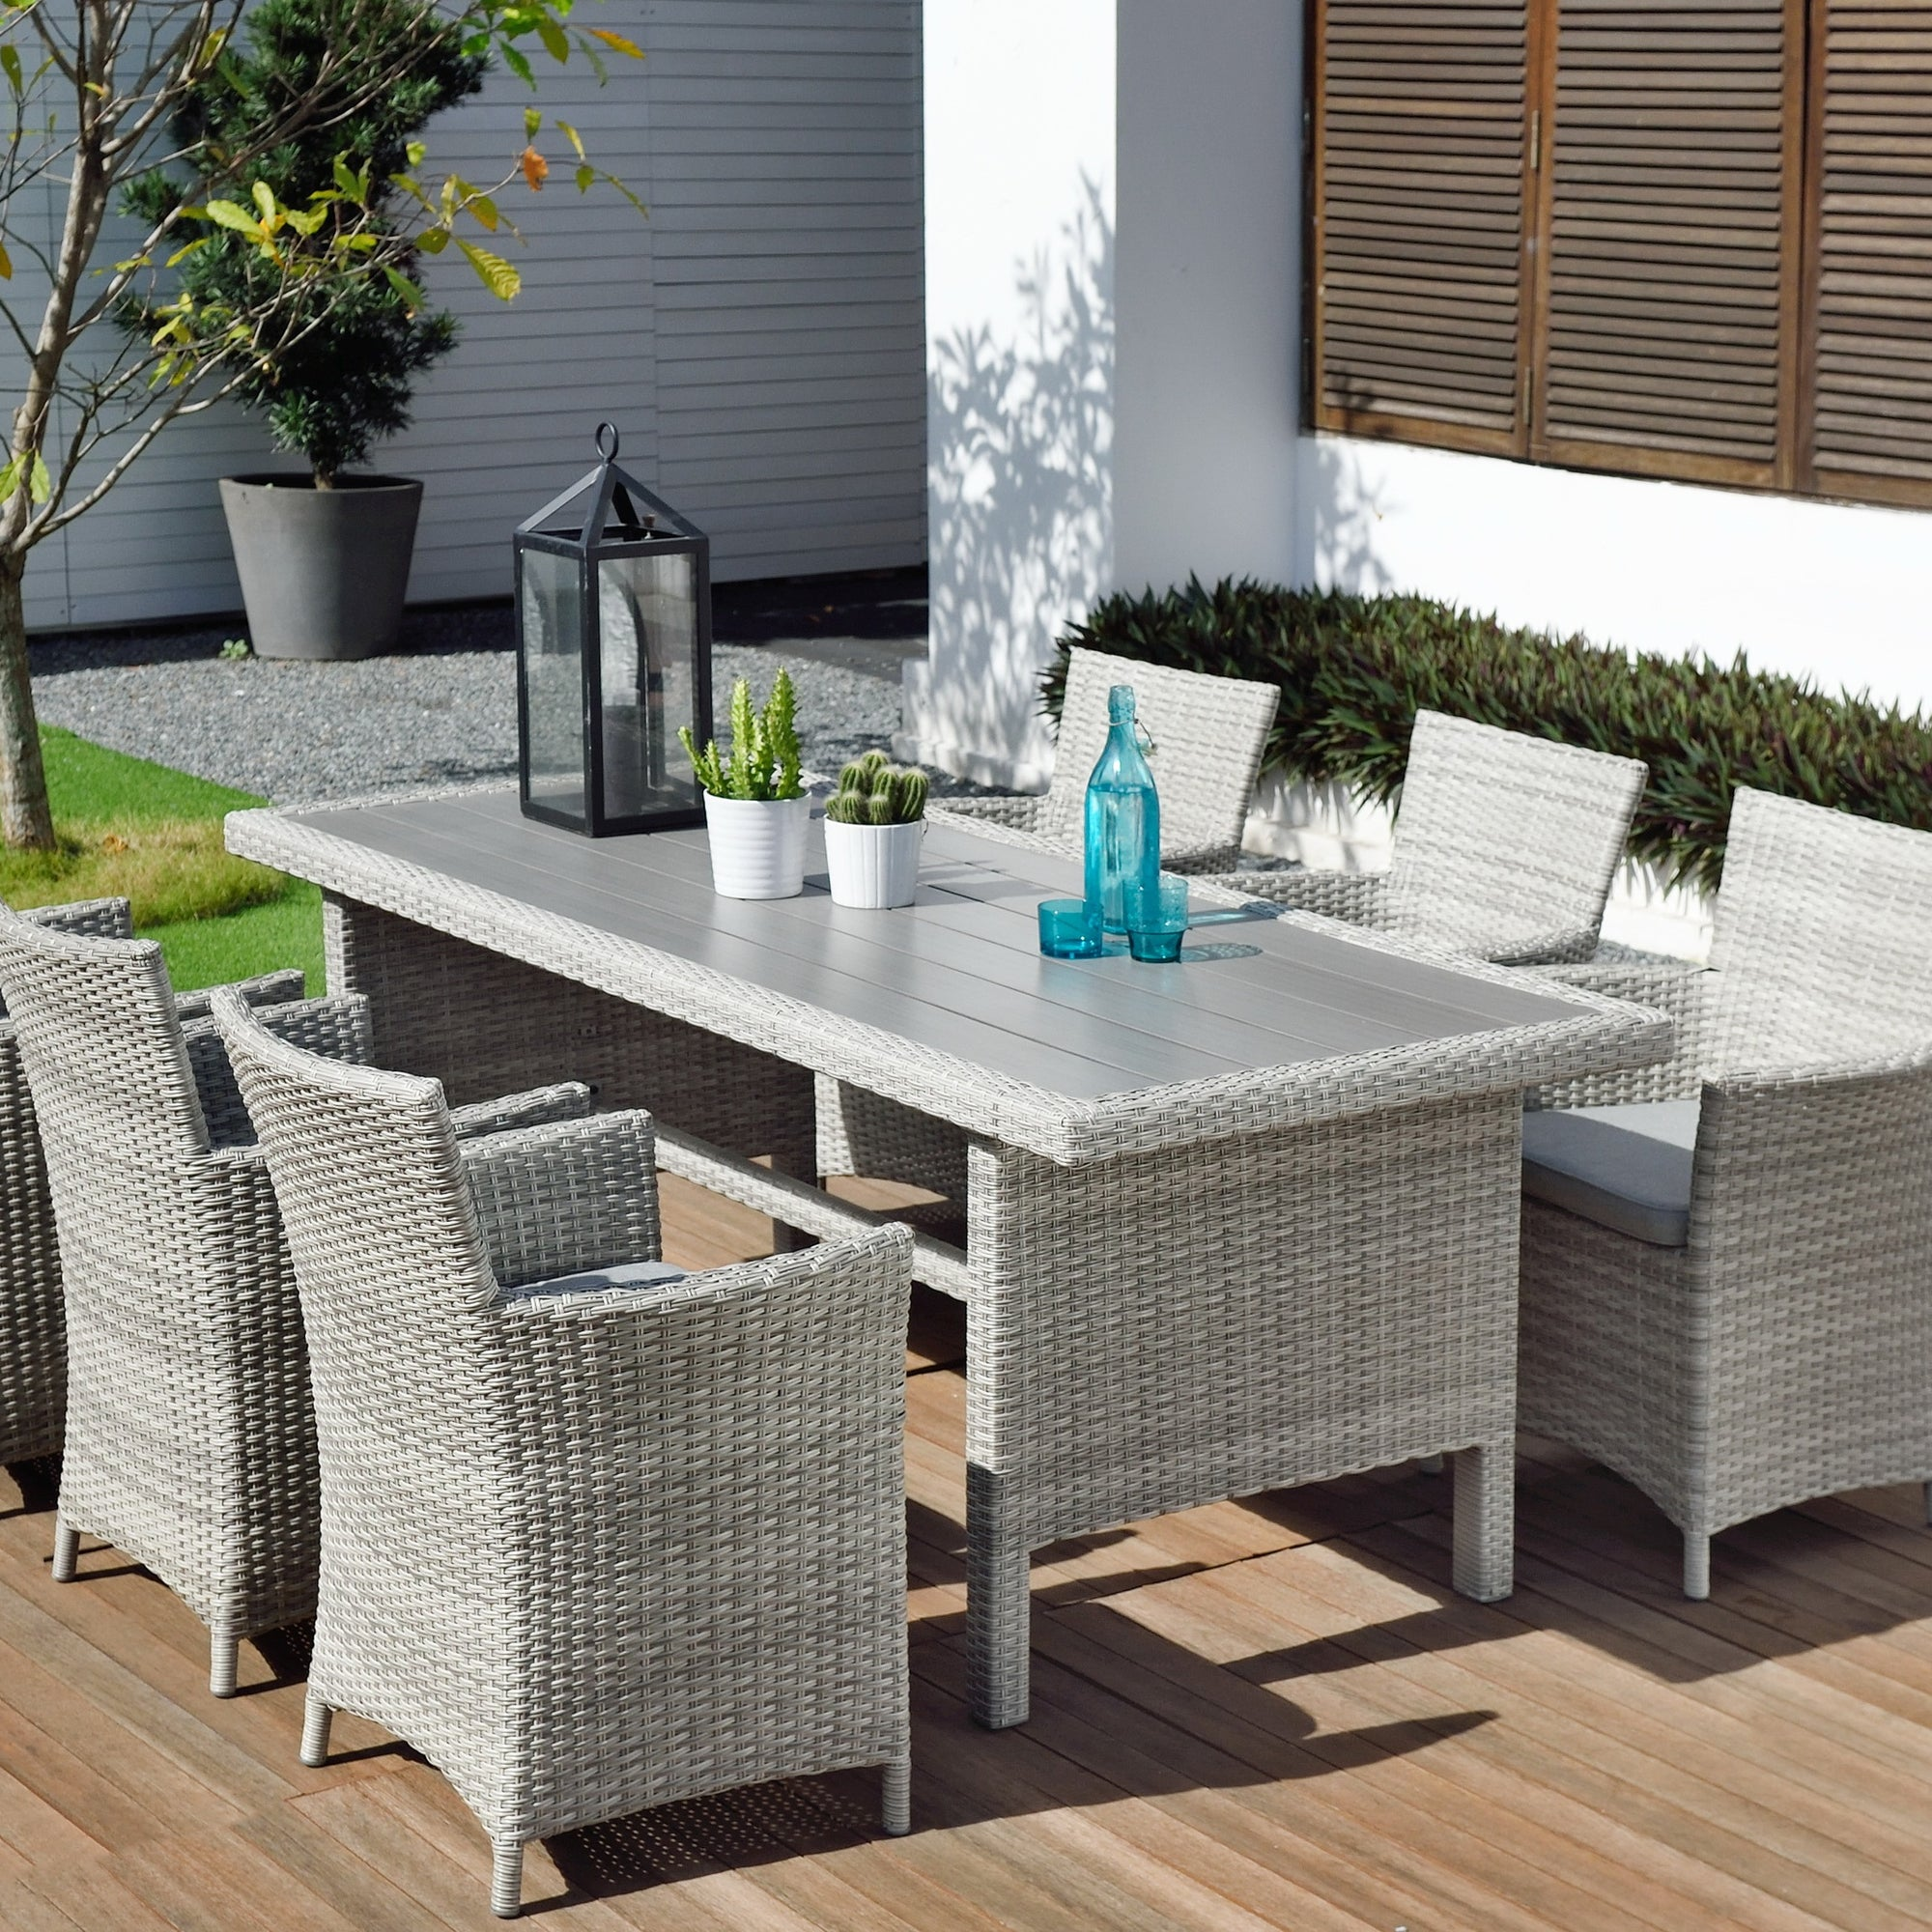 Oyster Bay 7-Piece Outdoor Dining Set